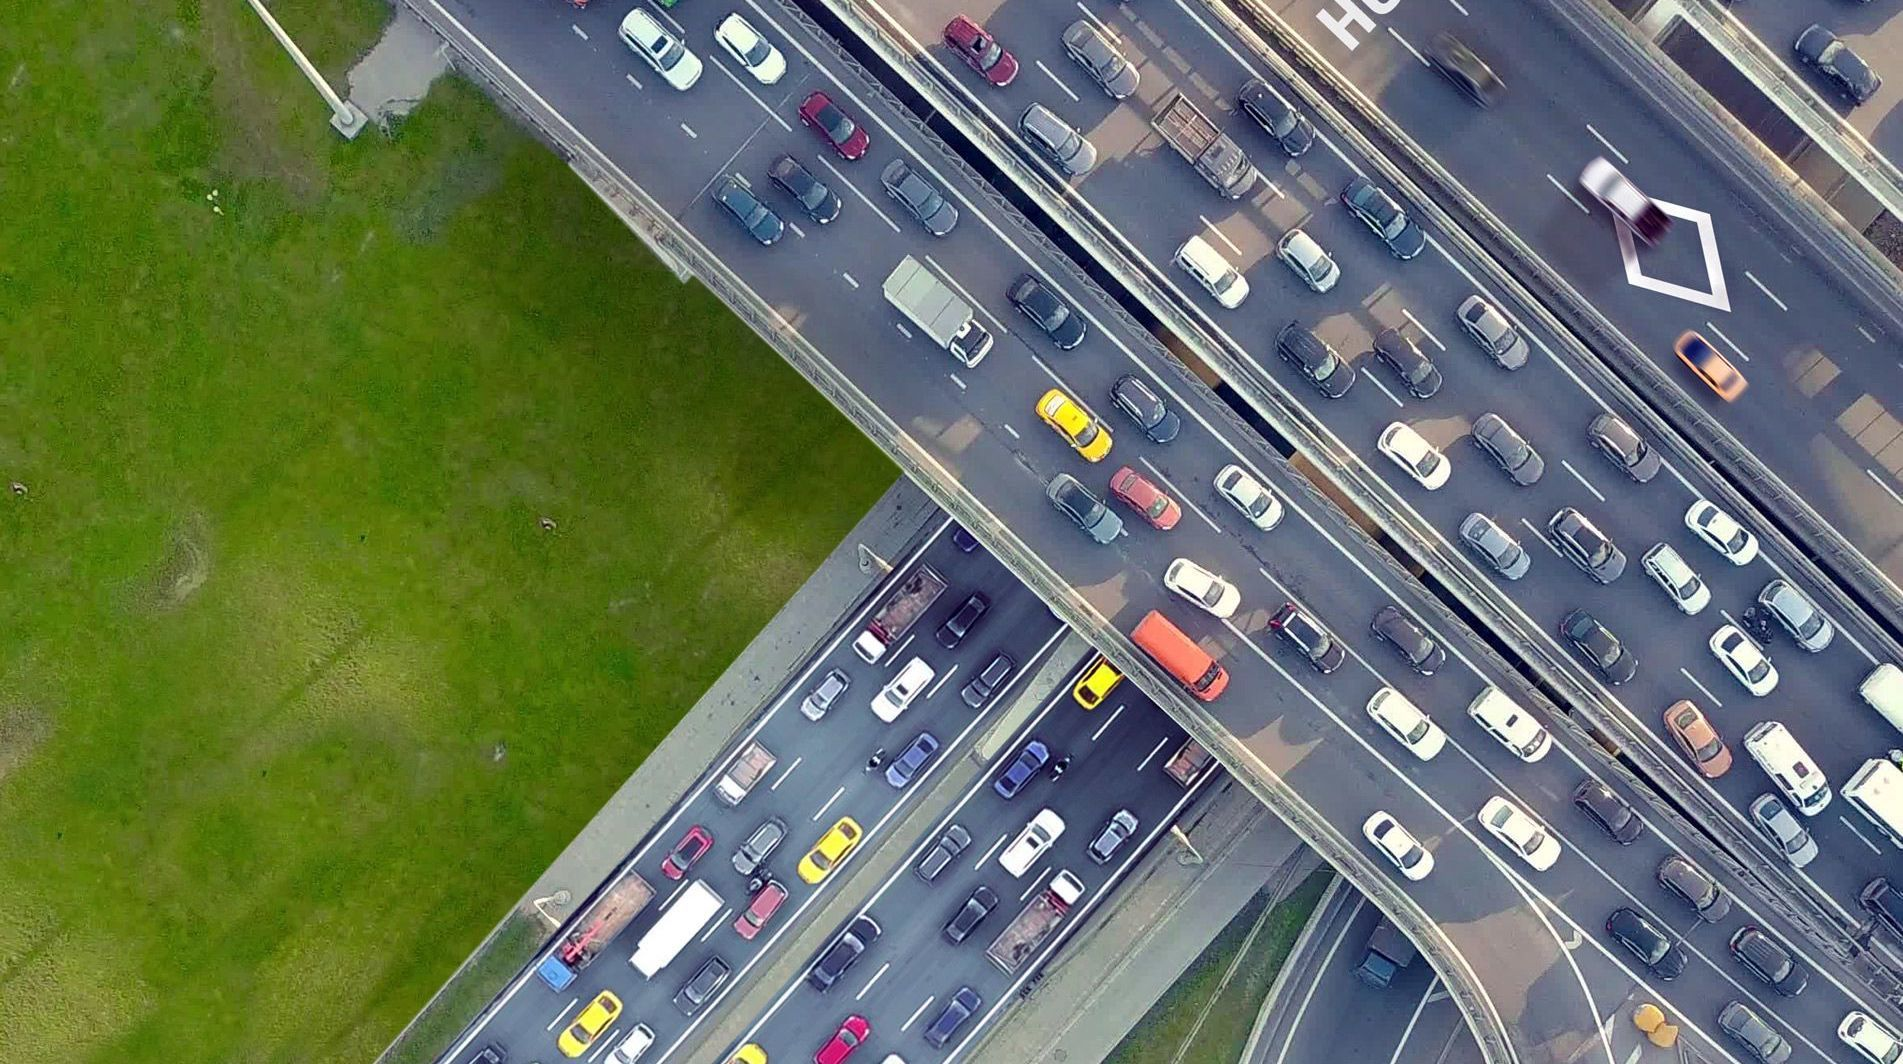 Birdseye view of roads with cars in traffic, on the ground road and overpass above it